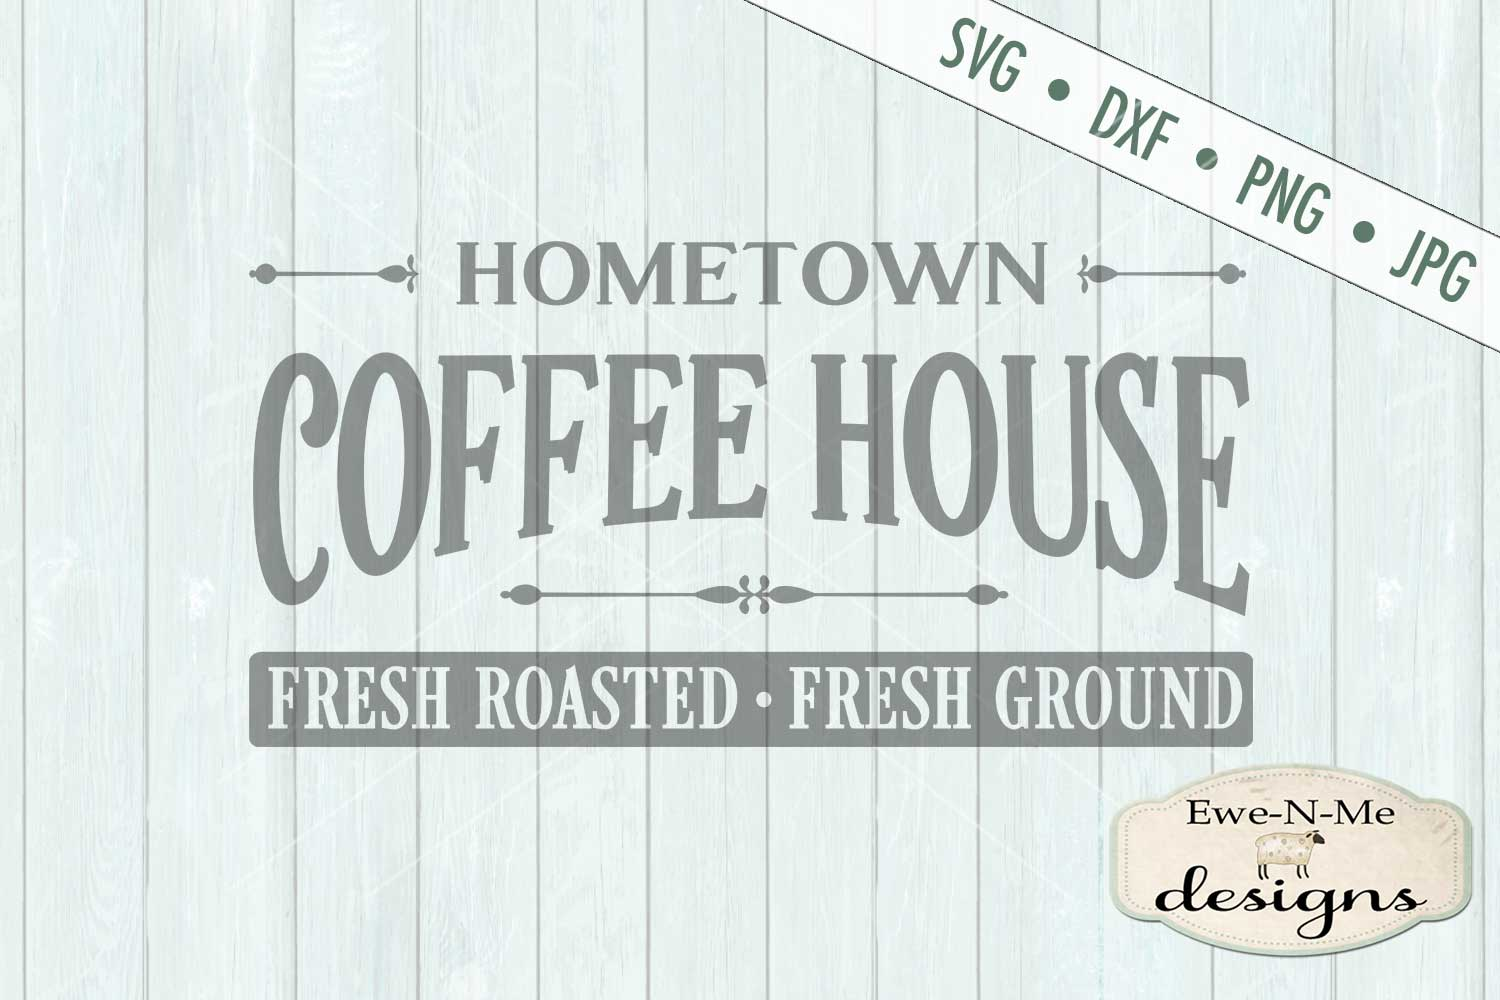 Hometown Coffee House SVG DXF Files example image 2